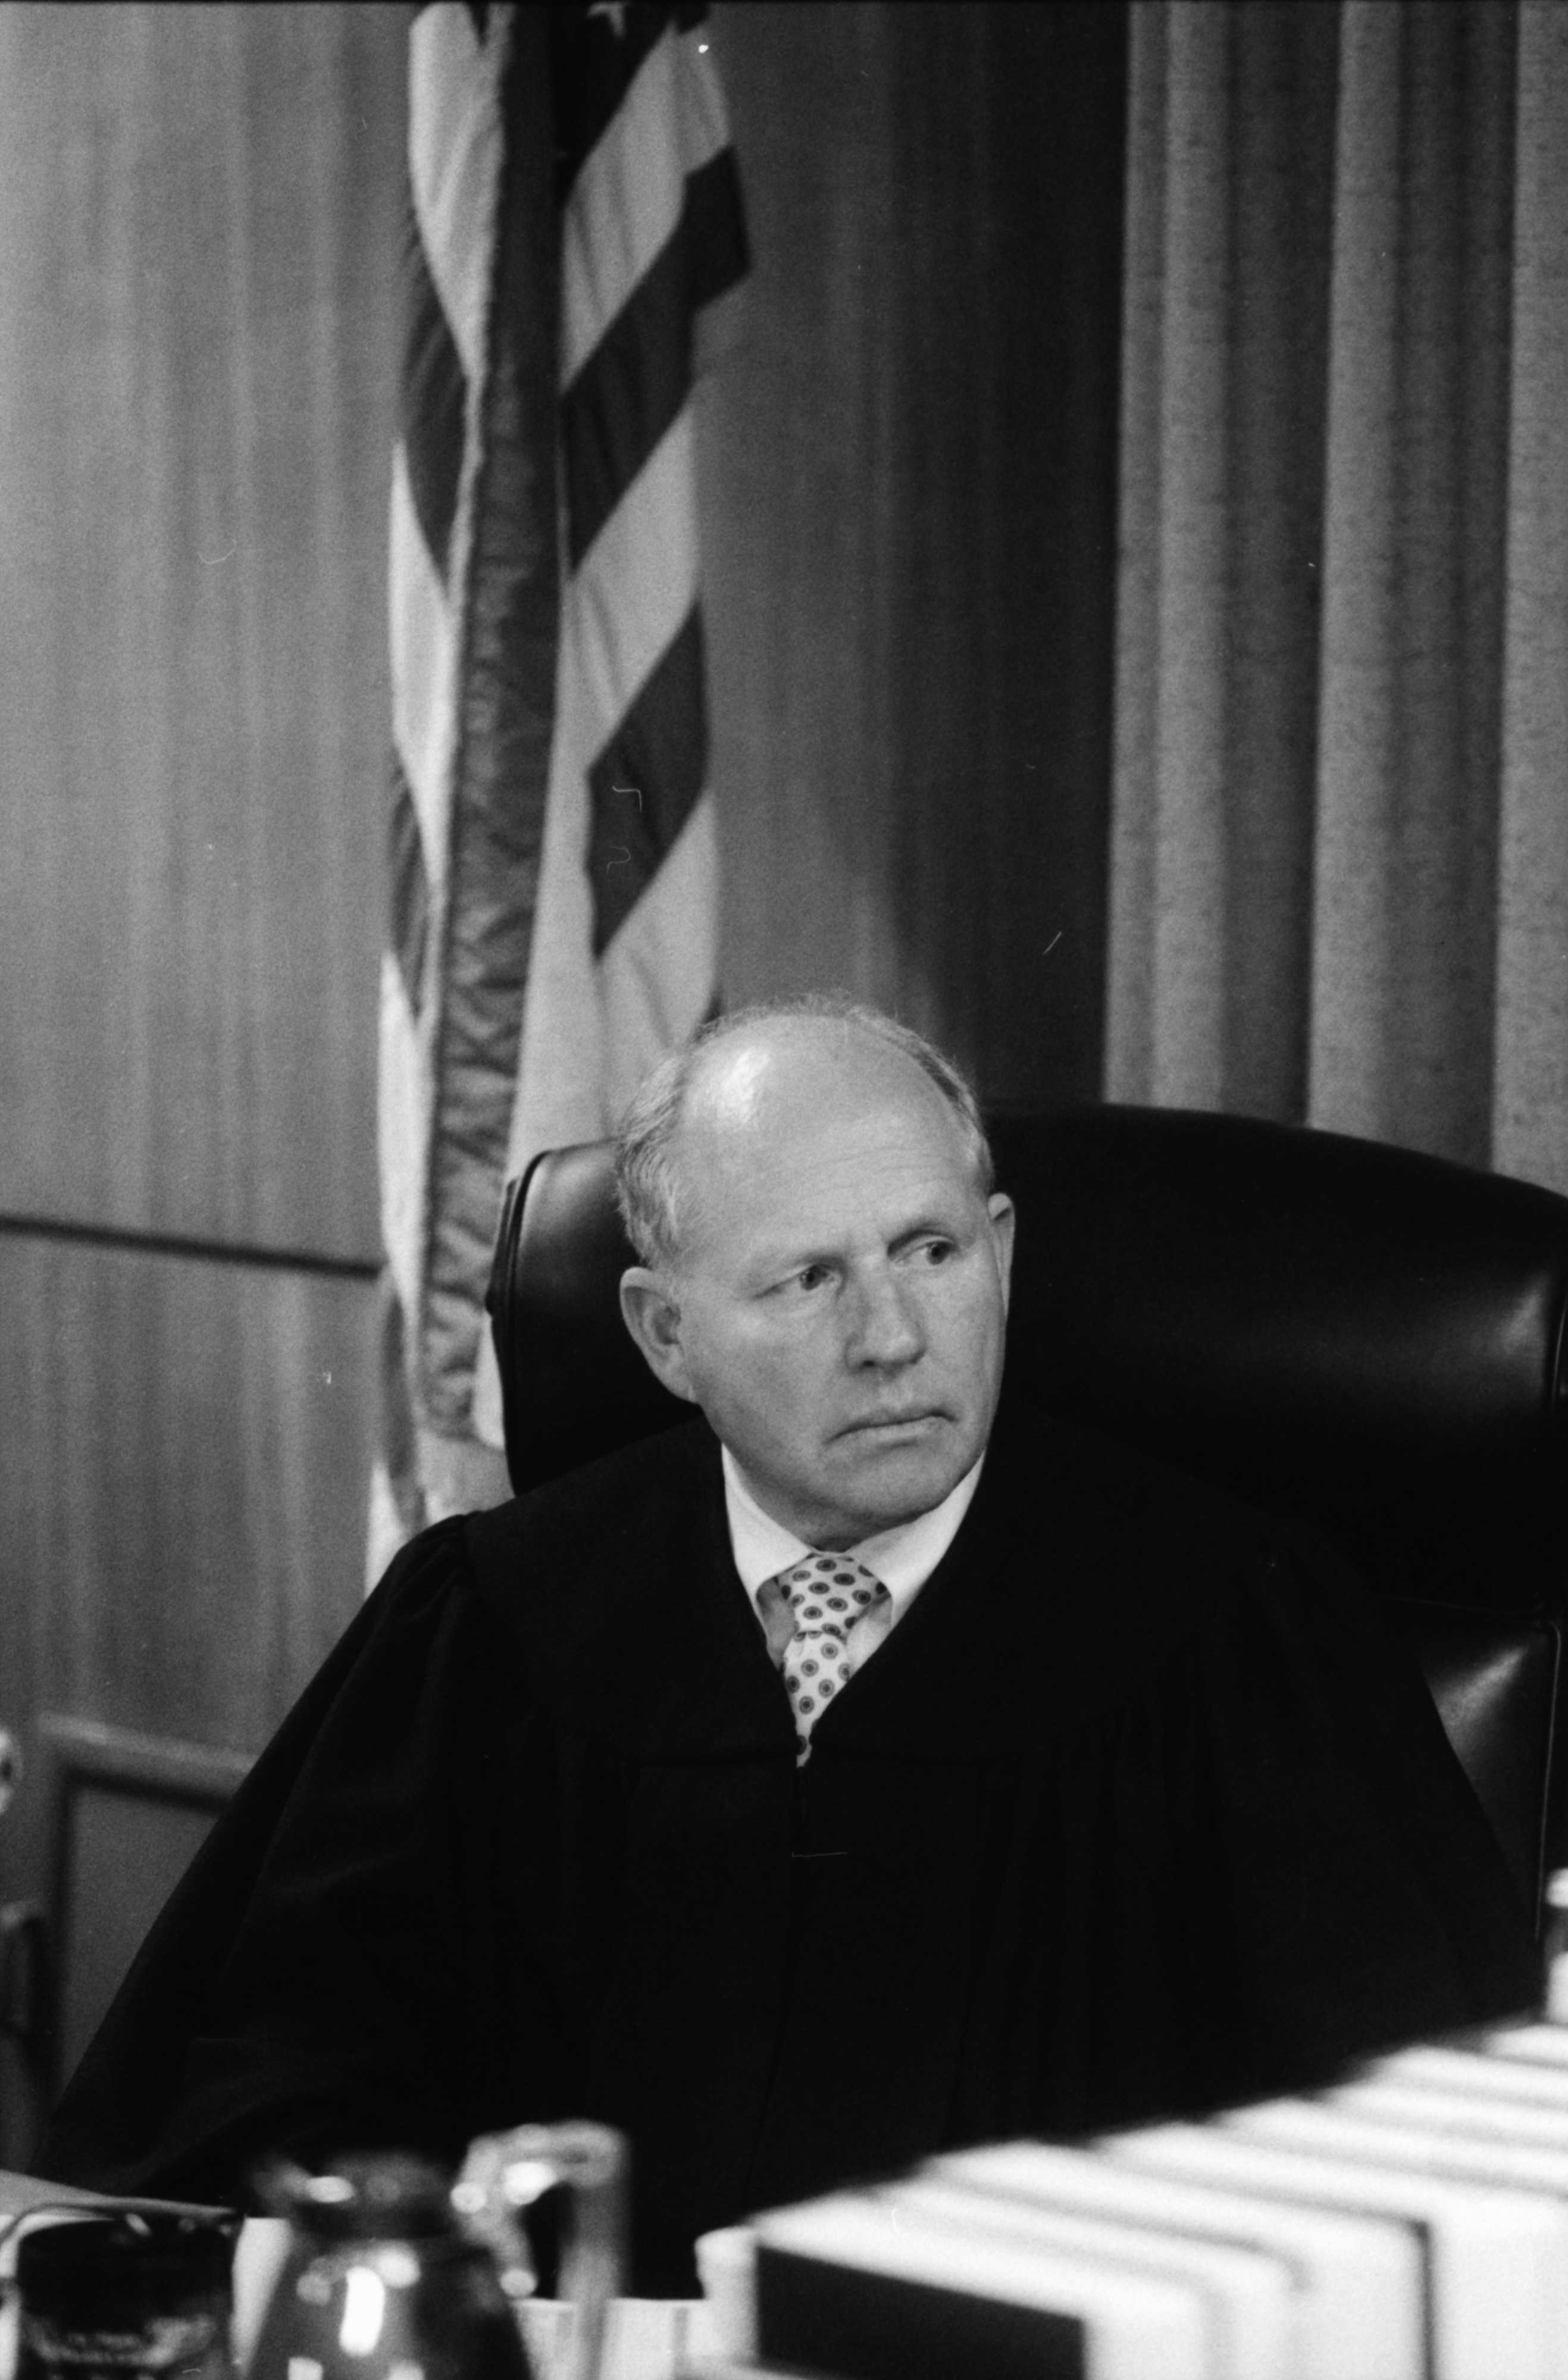 Judge Patrick J. Conlin at Gelman Sciences trial, August 1990 image